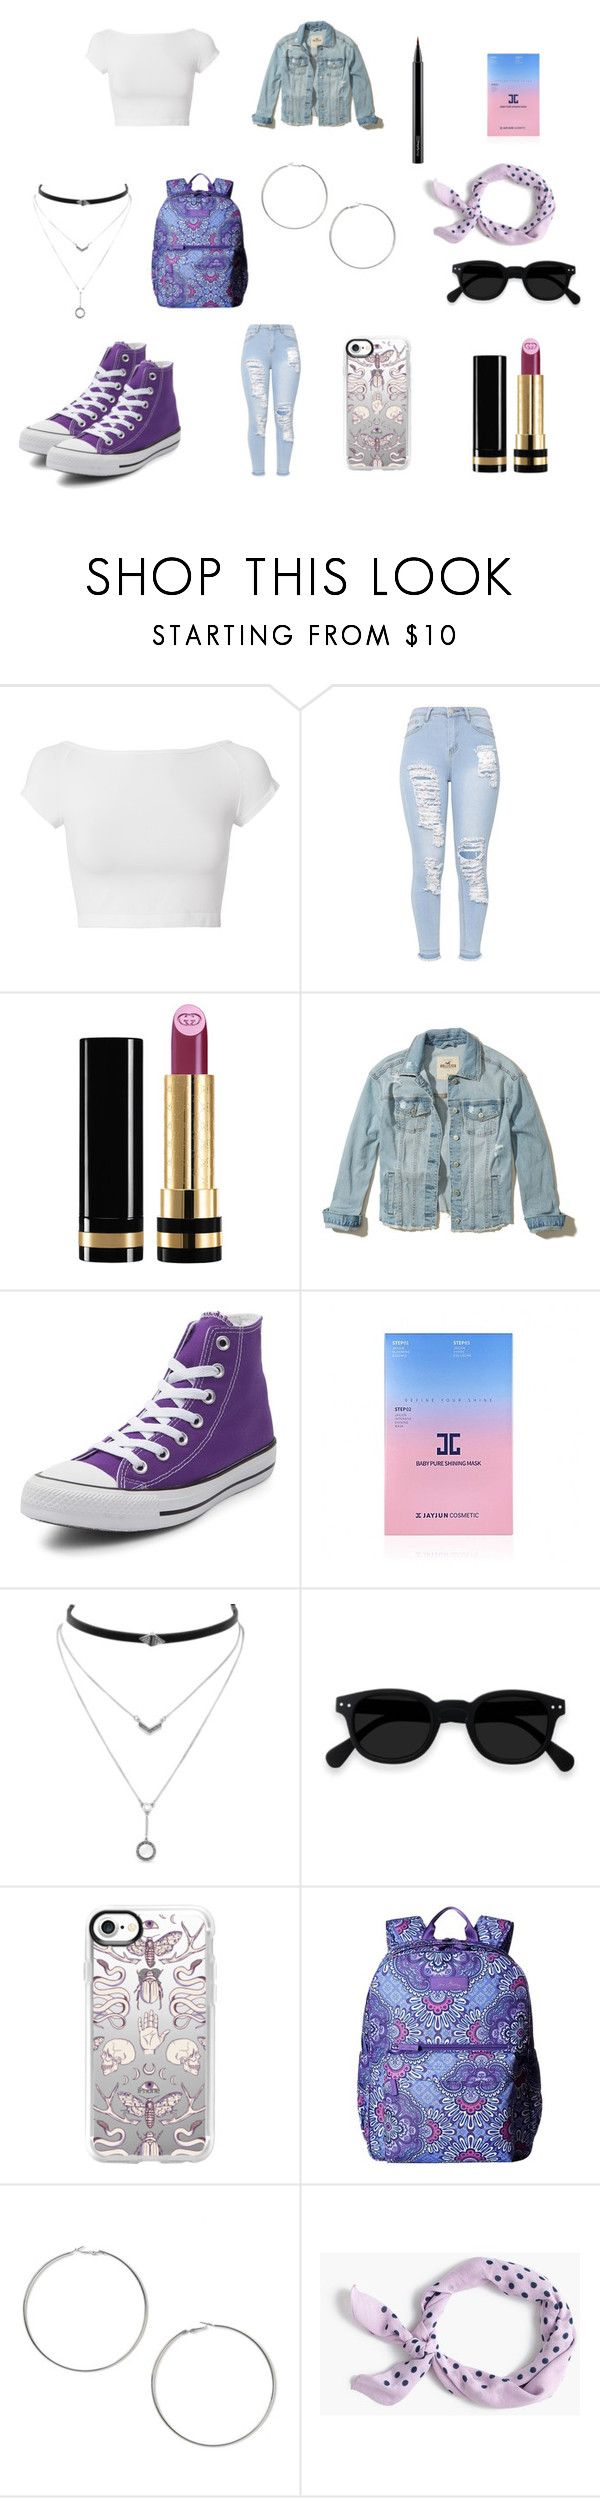 """Lilac"" by lasaraleen ❤ liked on Polyvore featuring Helmut Lang, Gucci, Hollister Co., Converse, JayJun, Jessica Simpson, Casetify, Vera Bradley, Miss Selfridge and J.Crew"